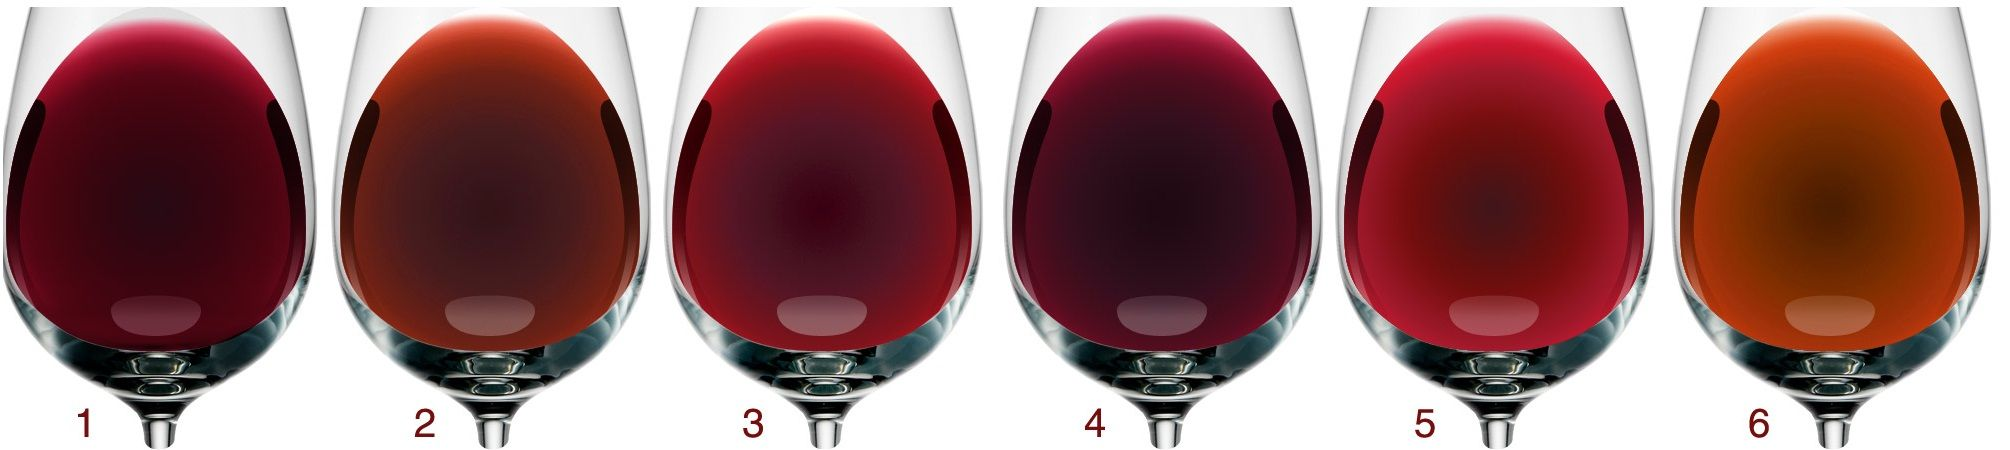 Wine Color Red Wine Color Chart Wine Folly Blind Wine Tasting Party Red Wine